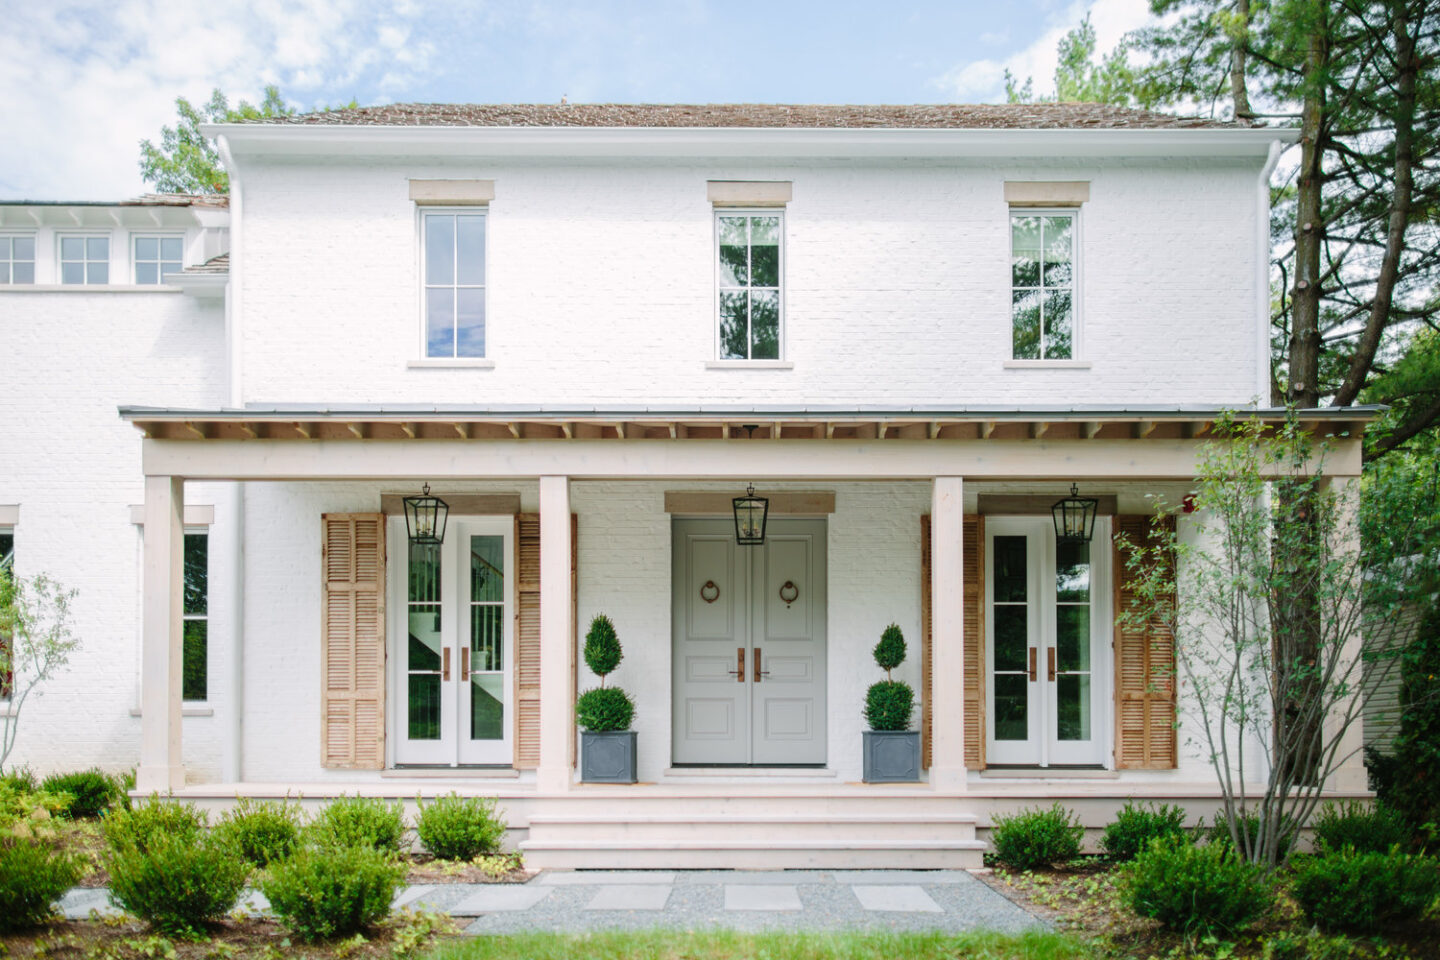 Charming and romantic modern farmhouse exterior facade with lime washed brick, rustic natural wood shutters, and light grey front door. Interiors by Kate Marker in Barrington, IL. #houseexterior #housedesign #modernfarmhouse #whitebrick #curbappeal #greyfrontdoor